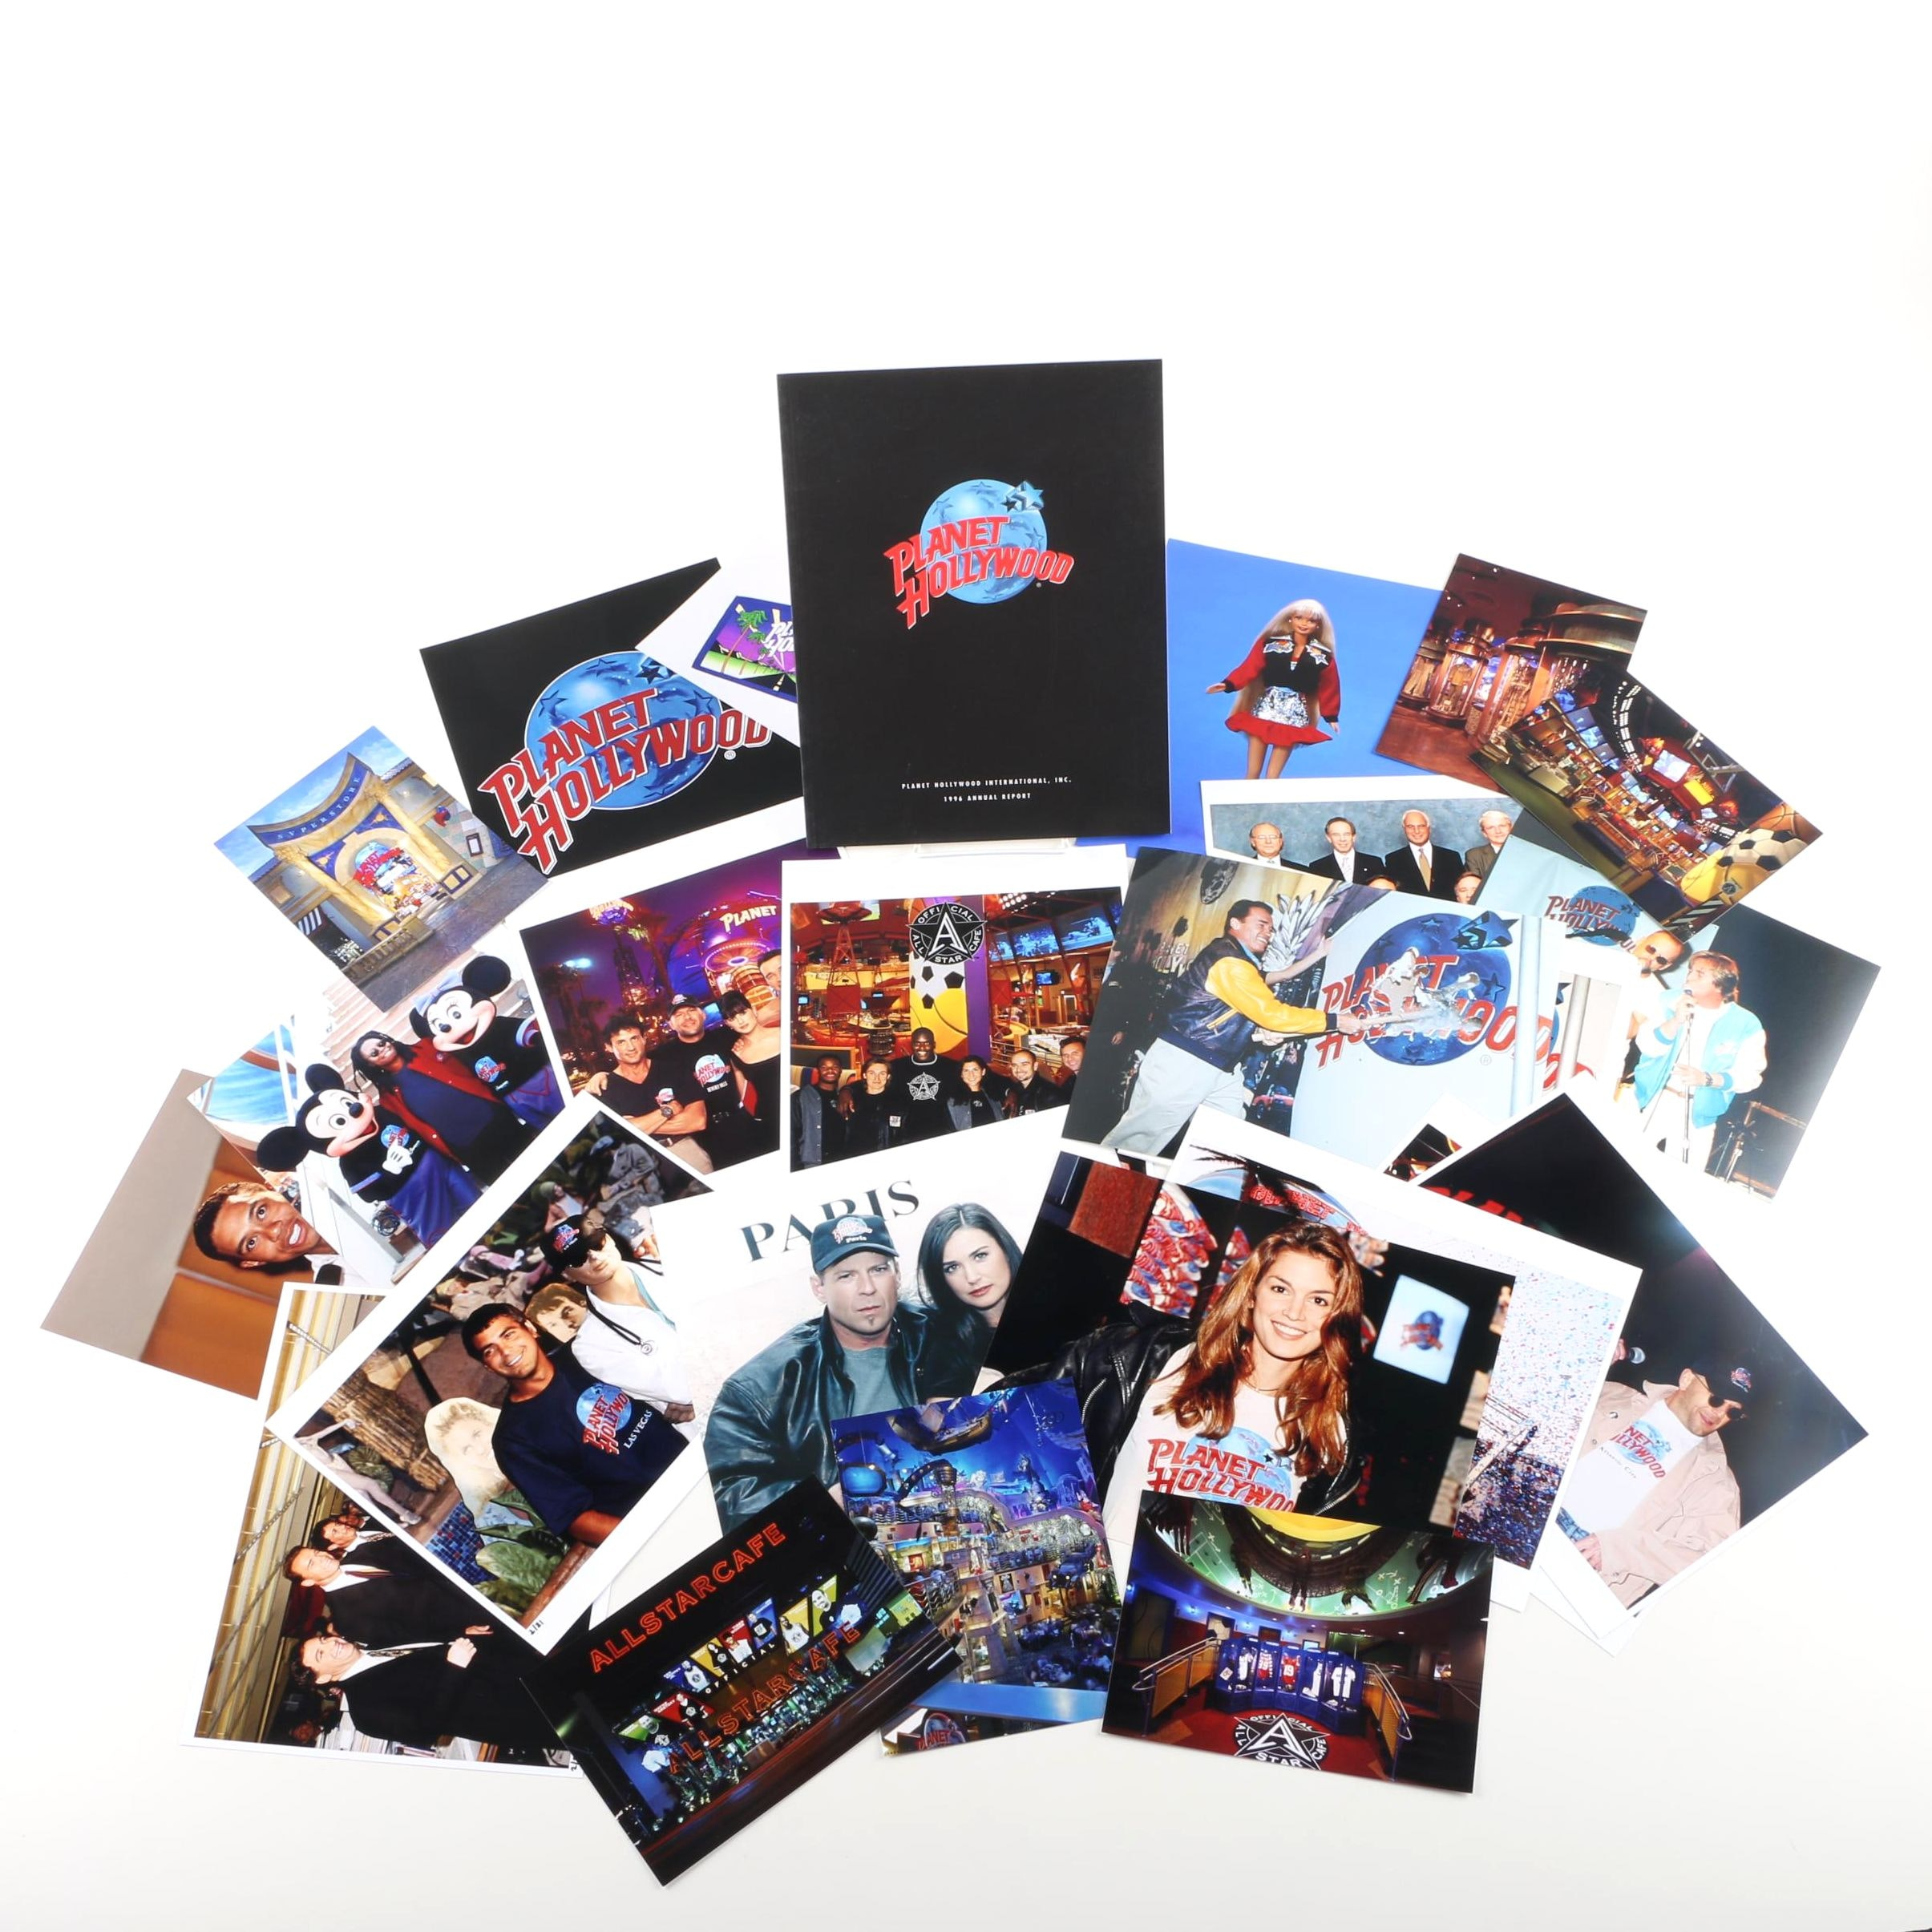 Collection of Planet Hollywood and All-Star Cafe Ephemera